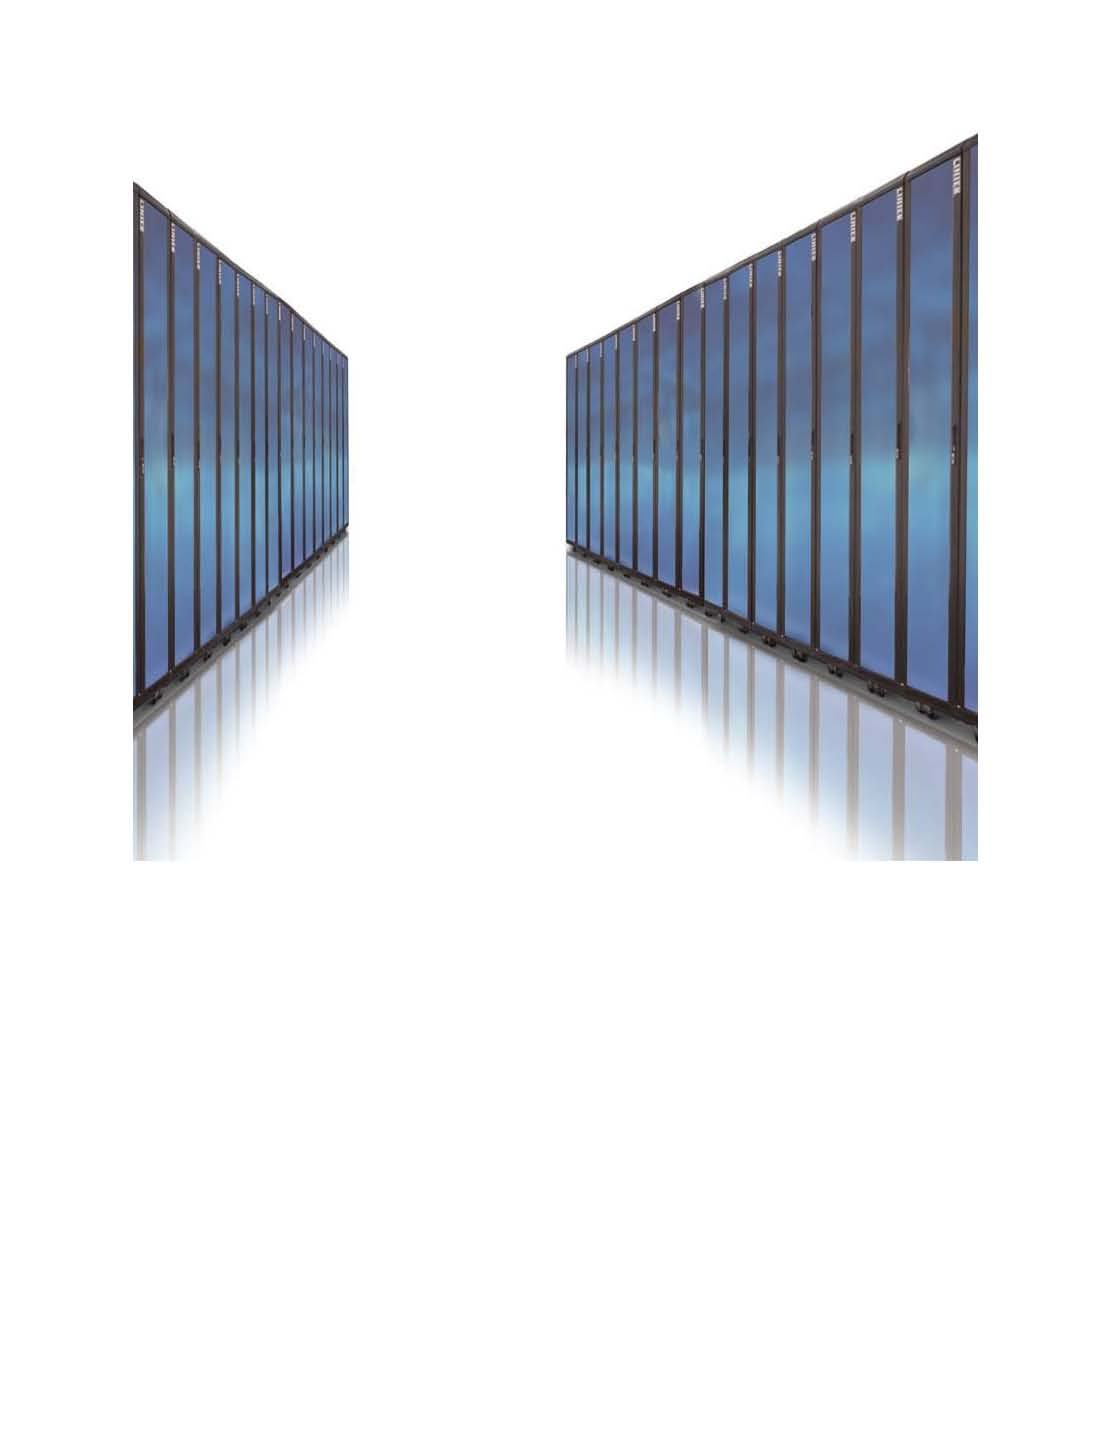 Data Center Network Products